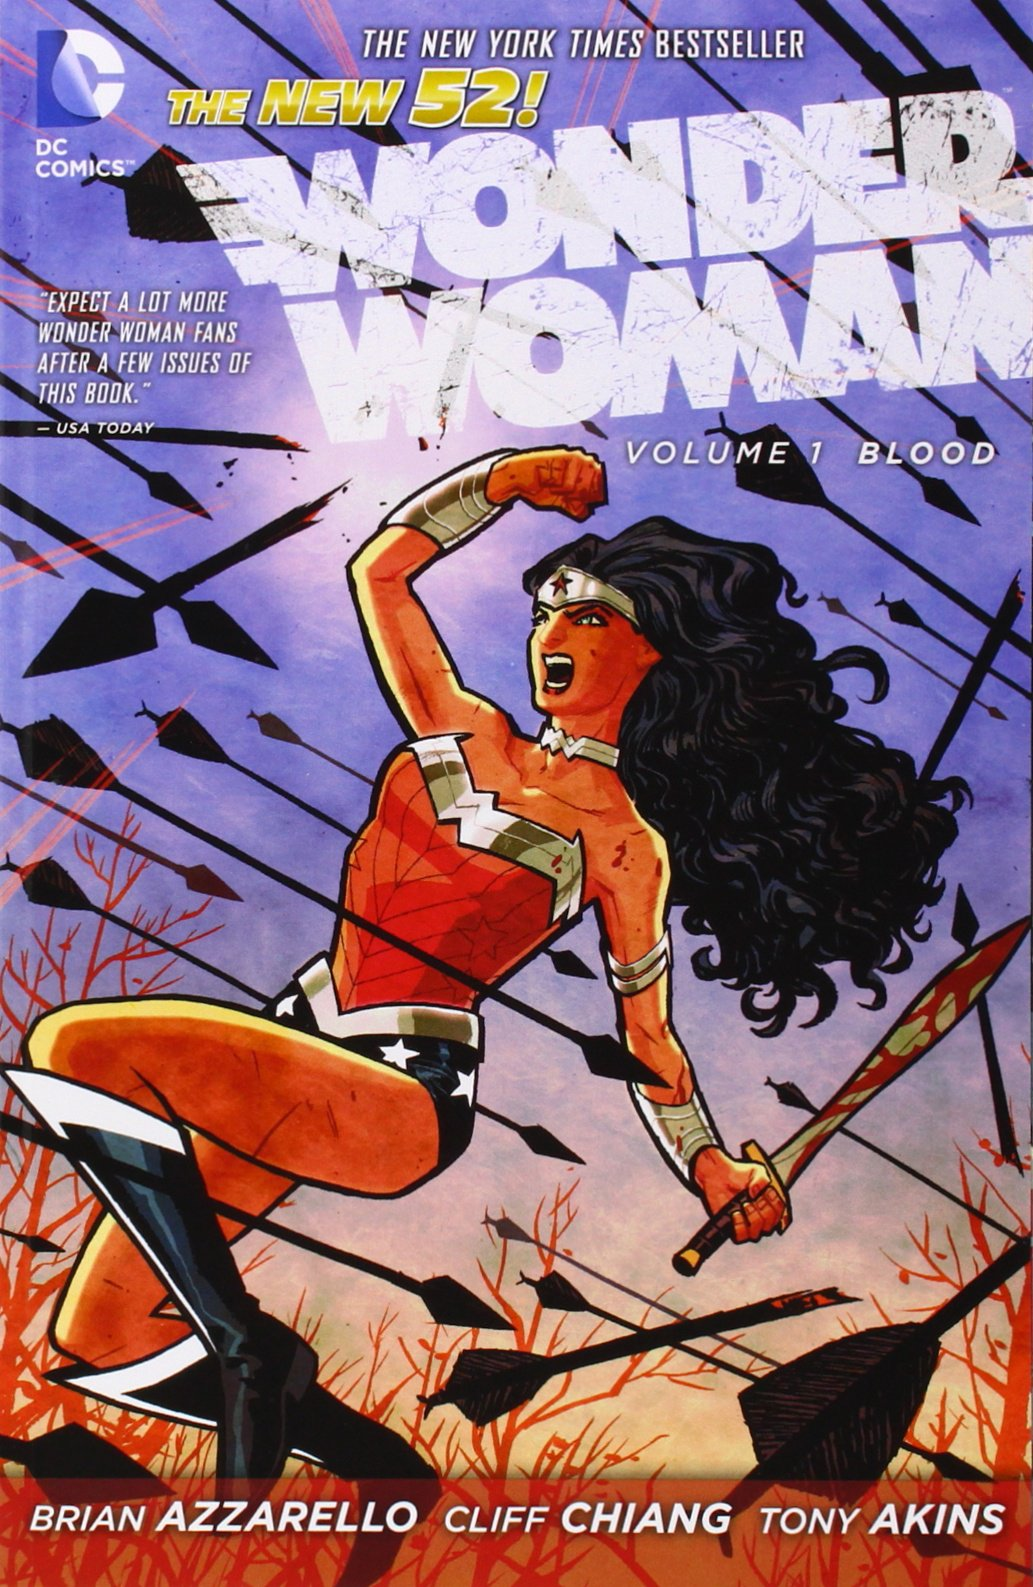 Image result for Wonder Woman, Volume 1: Blood